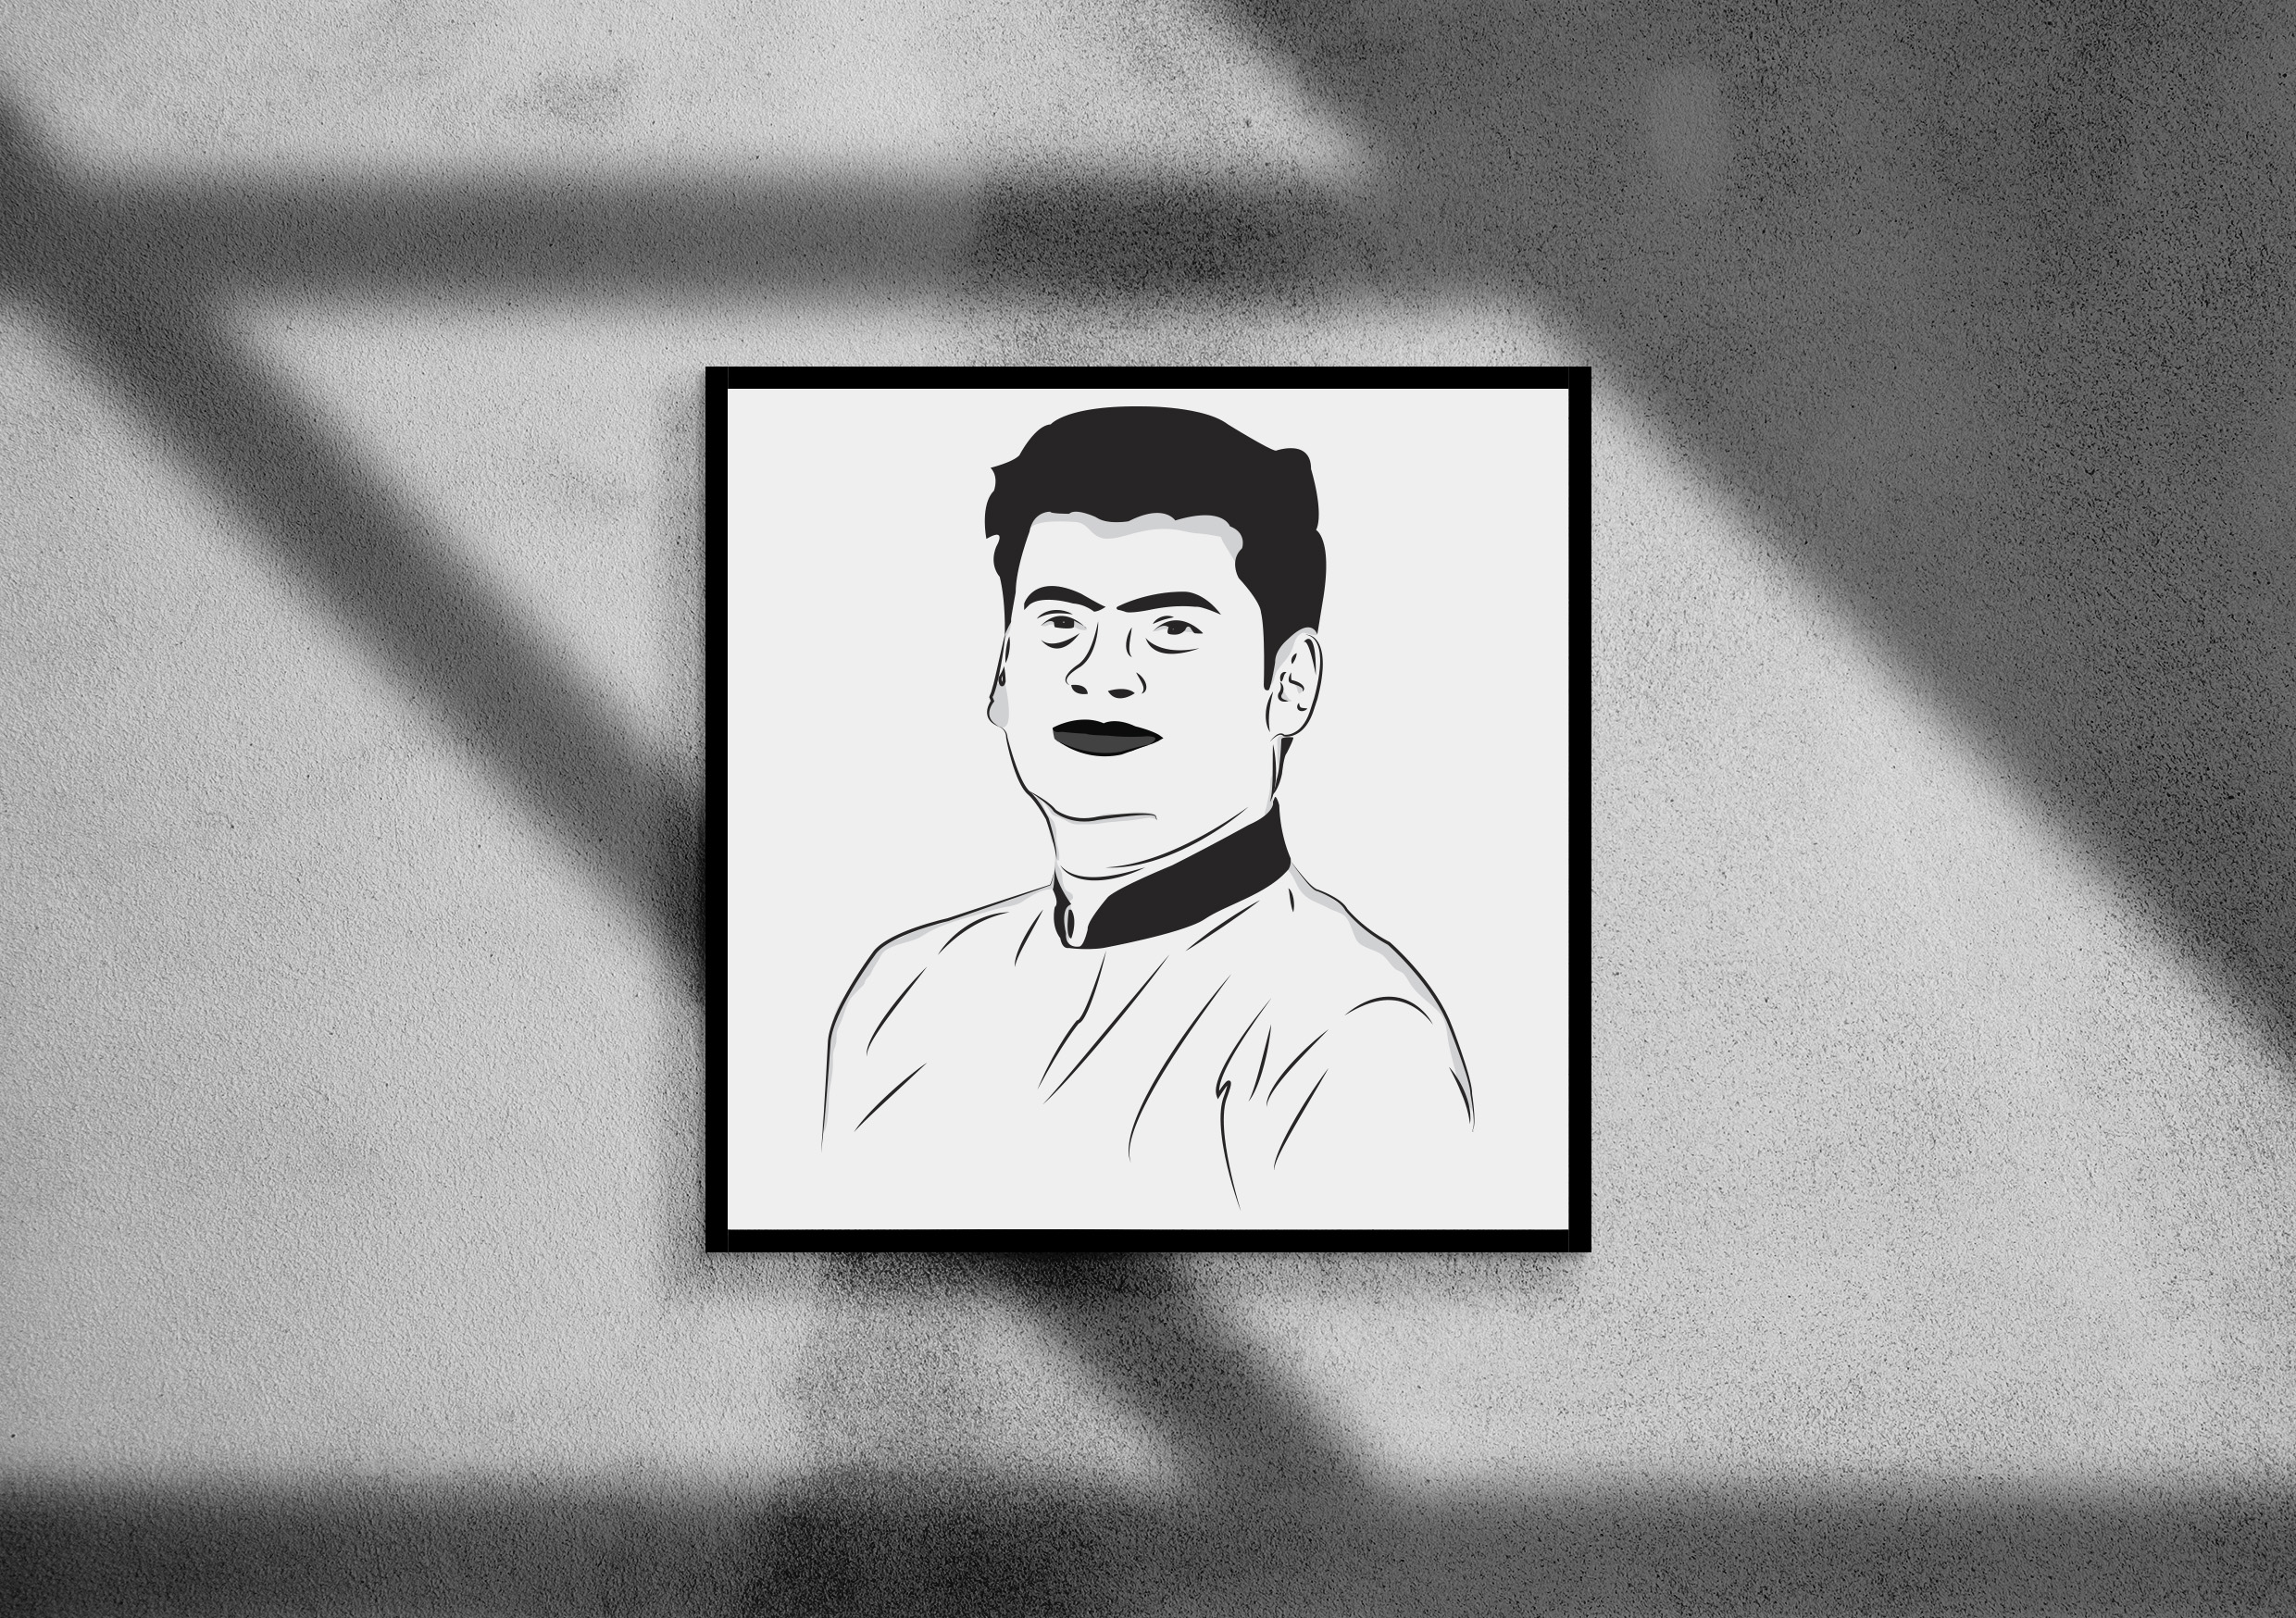 I will draw your portrait as a black and white cartoon